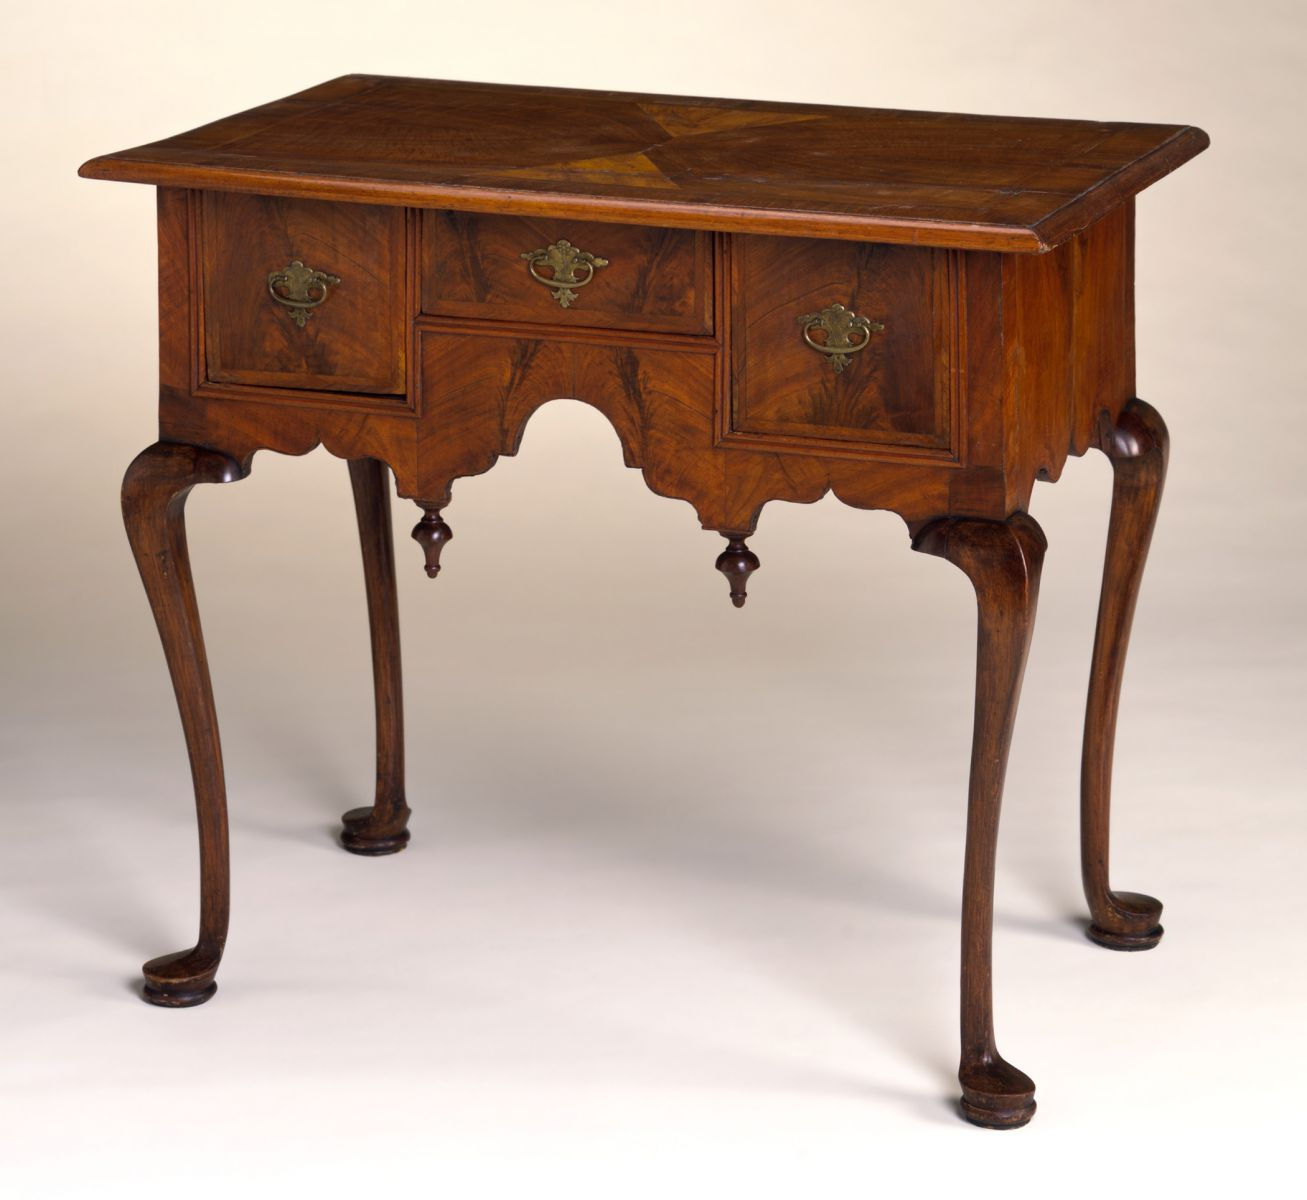 Queen Anne Furniture